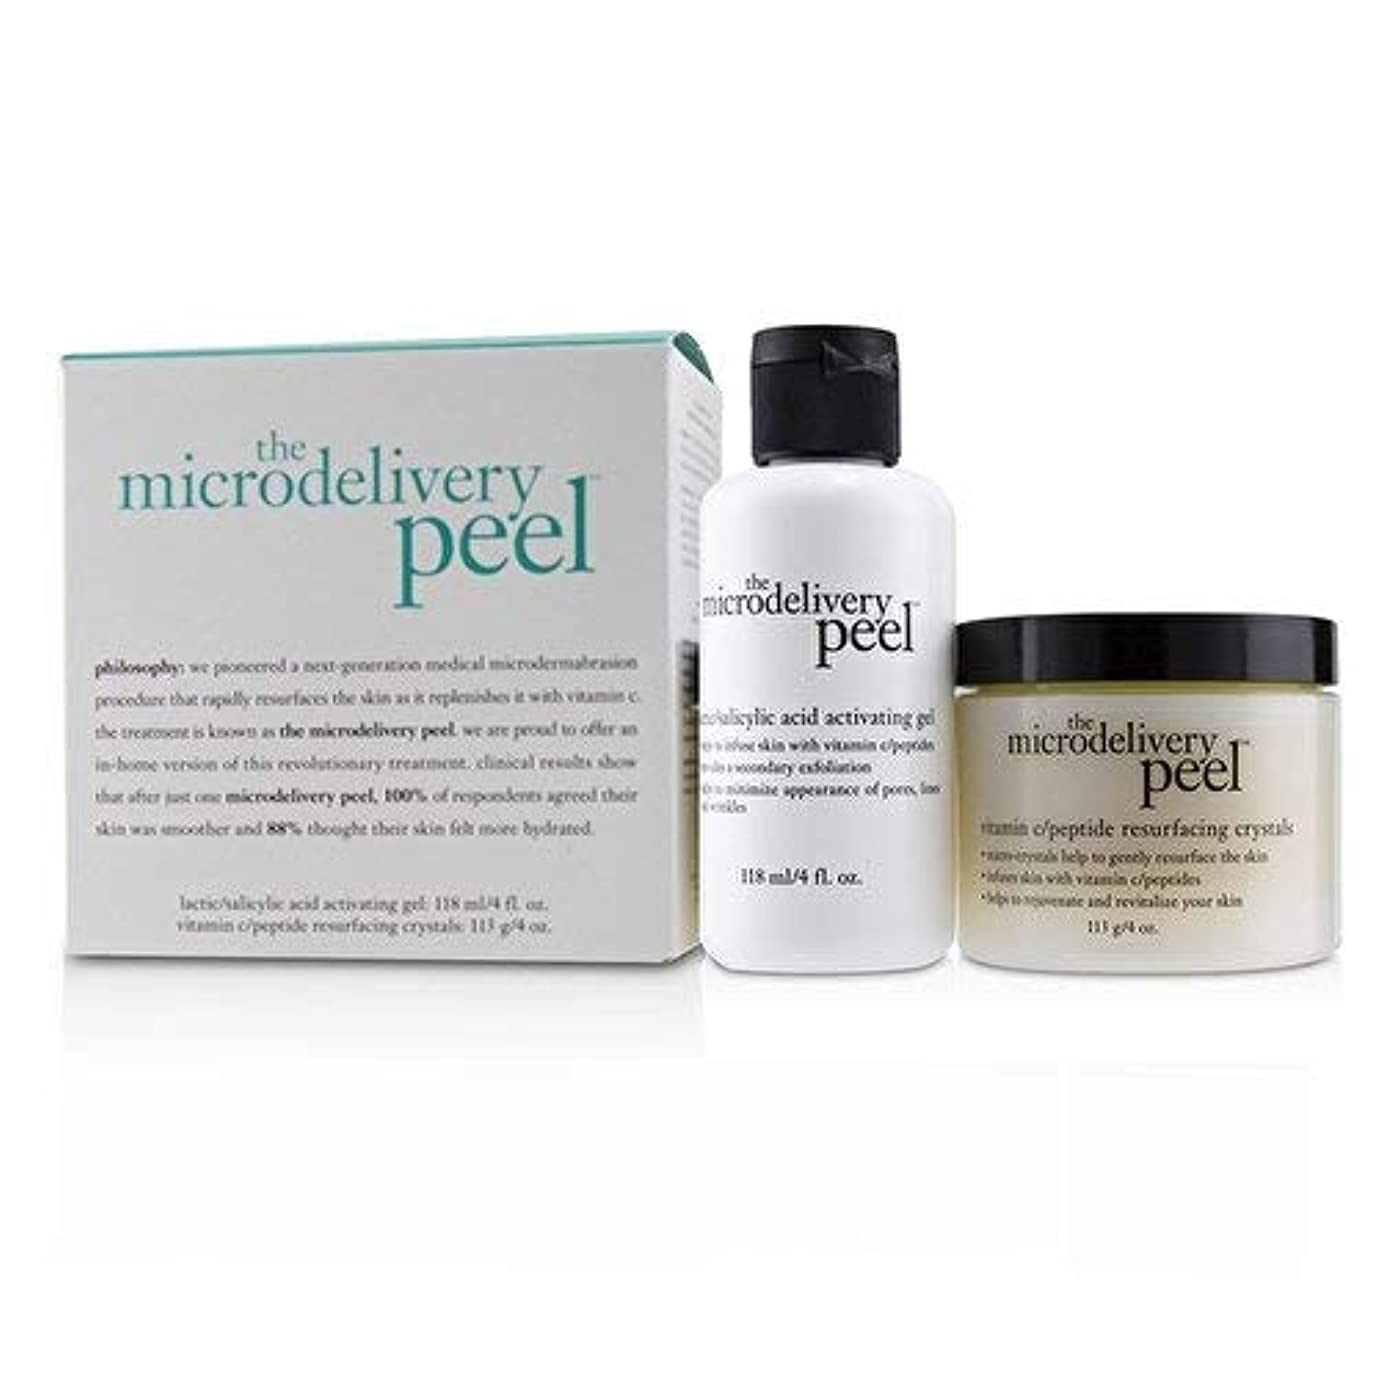 保存誓い弾丸フィロソフィー The Microdelivery Peel: Lactic/Salicylic Acid Activating Gel 118ml + Vitamin C/Peptide Resurfacing Crystals 2pcs並行輸入品